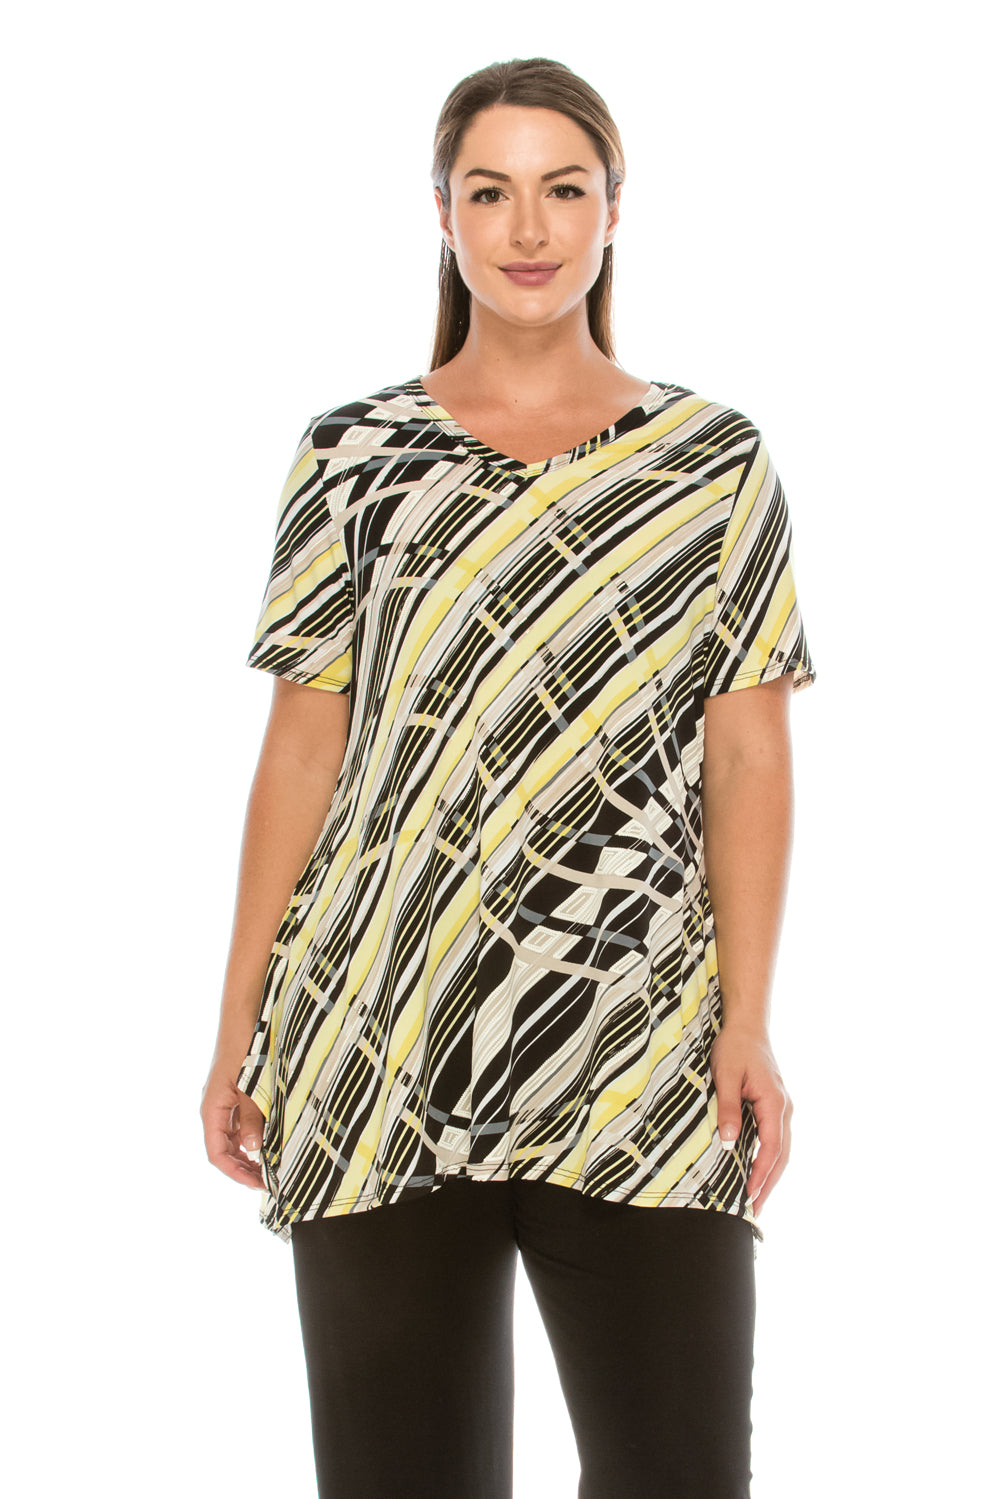 Jostar Women's HIT V-Neck Straight Bottom Top Short Sleeve Print, 343HT-SP-W127 - Jostar Online